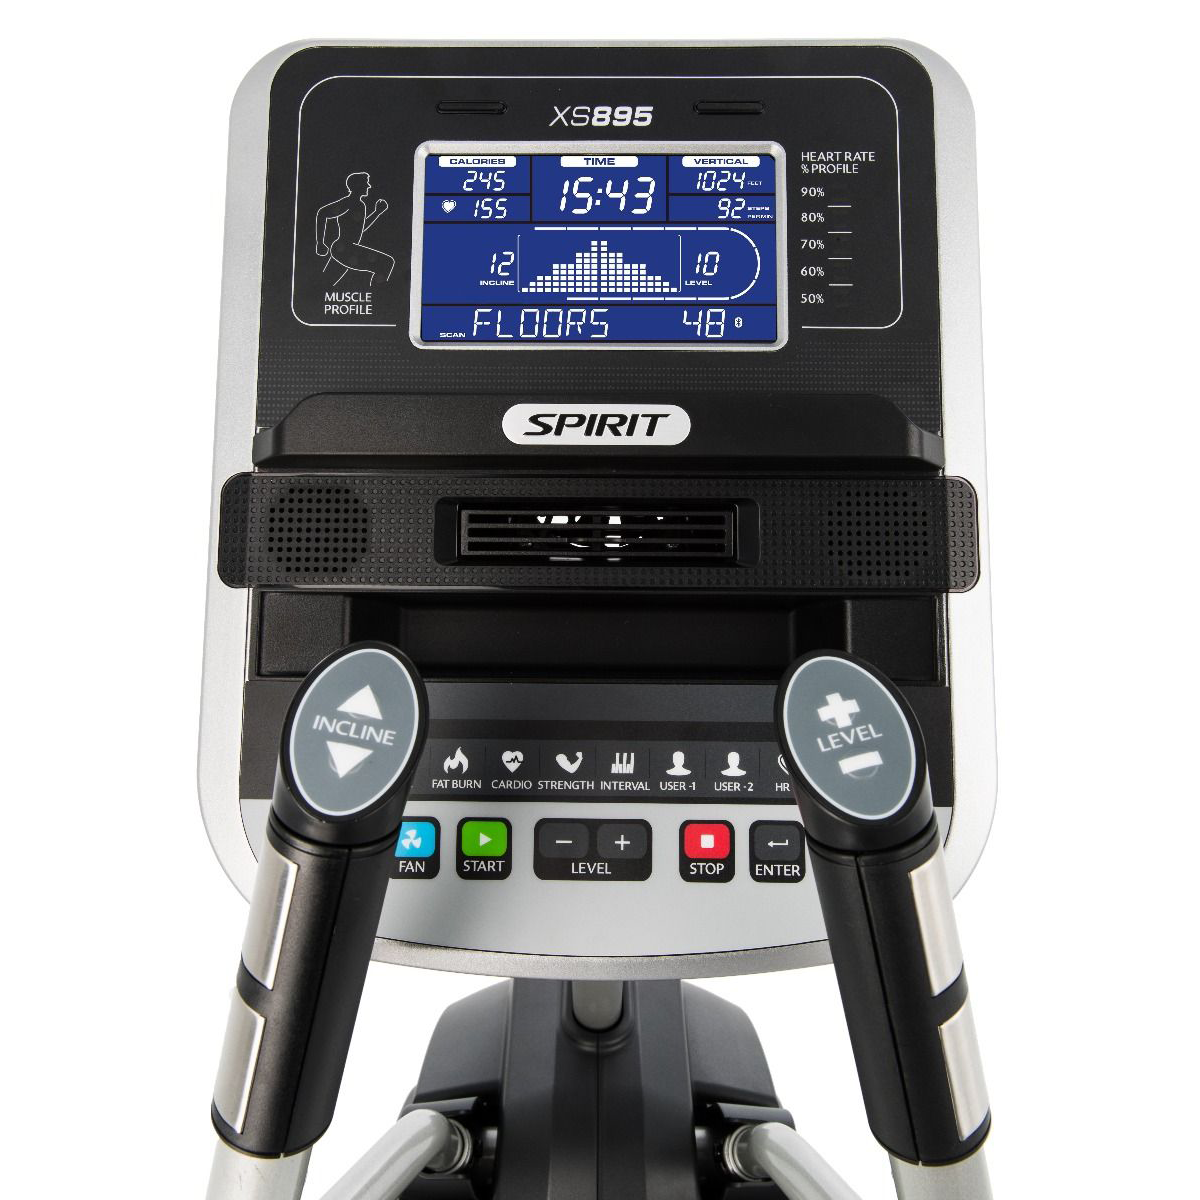 Spirit Fitness XS895 HIIT Trainer monitor with blue backlit LCD screen and control buttons.